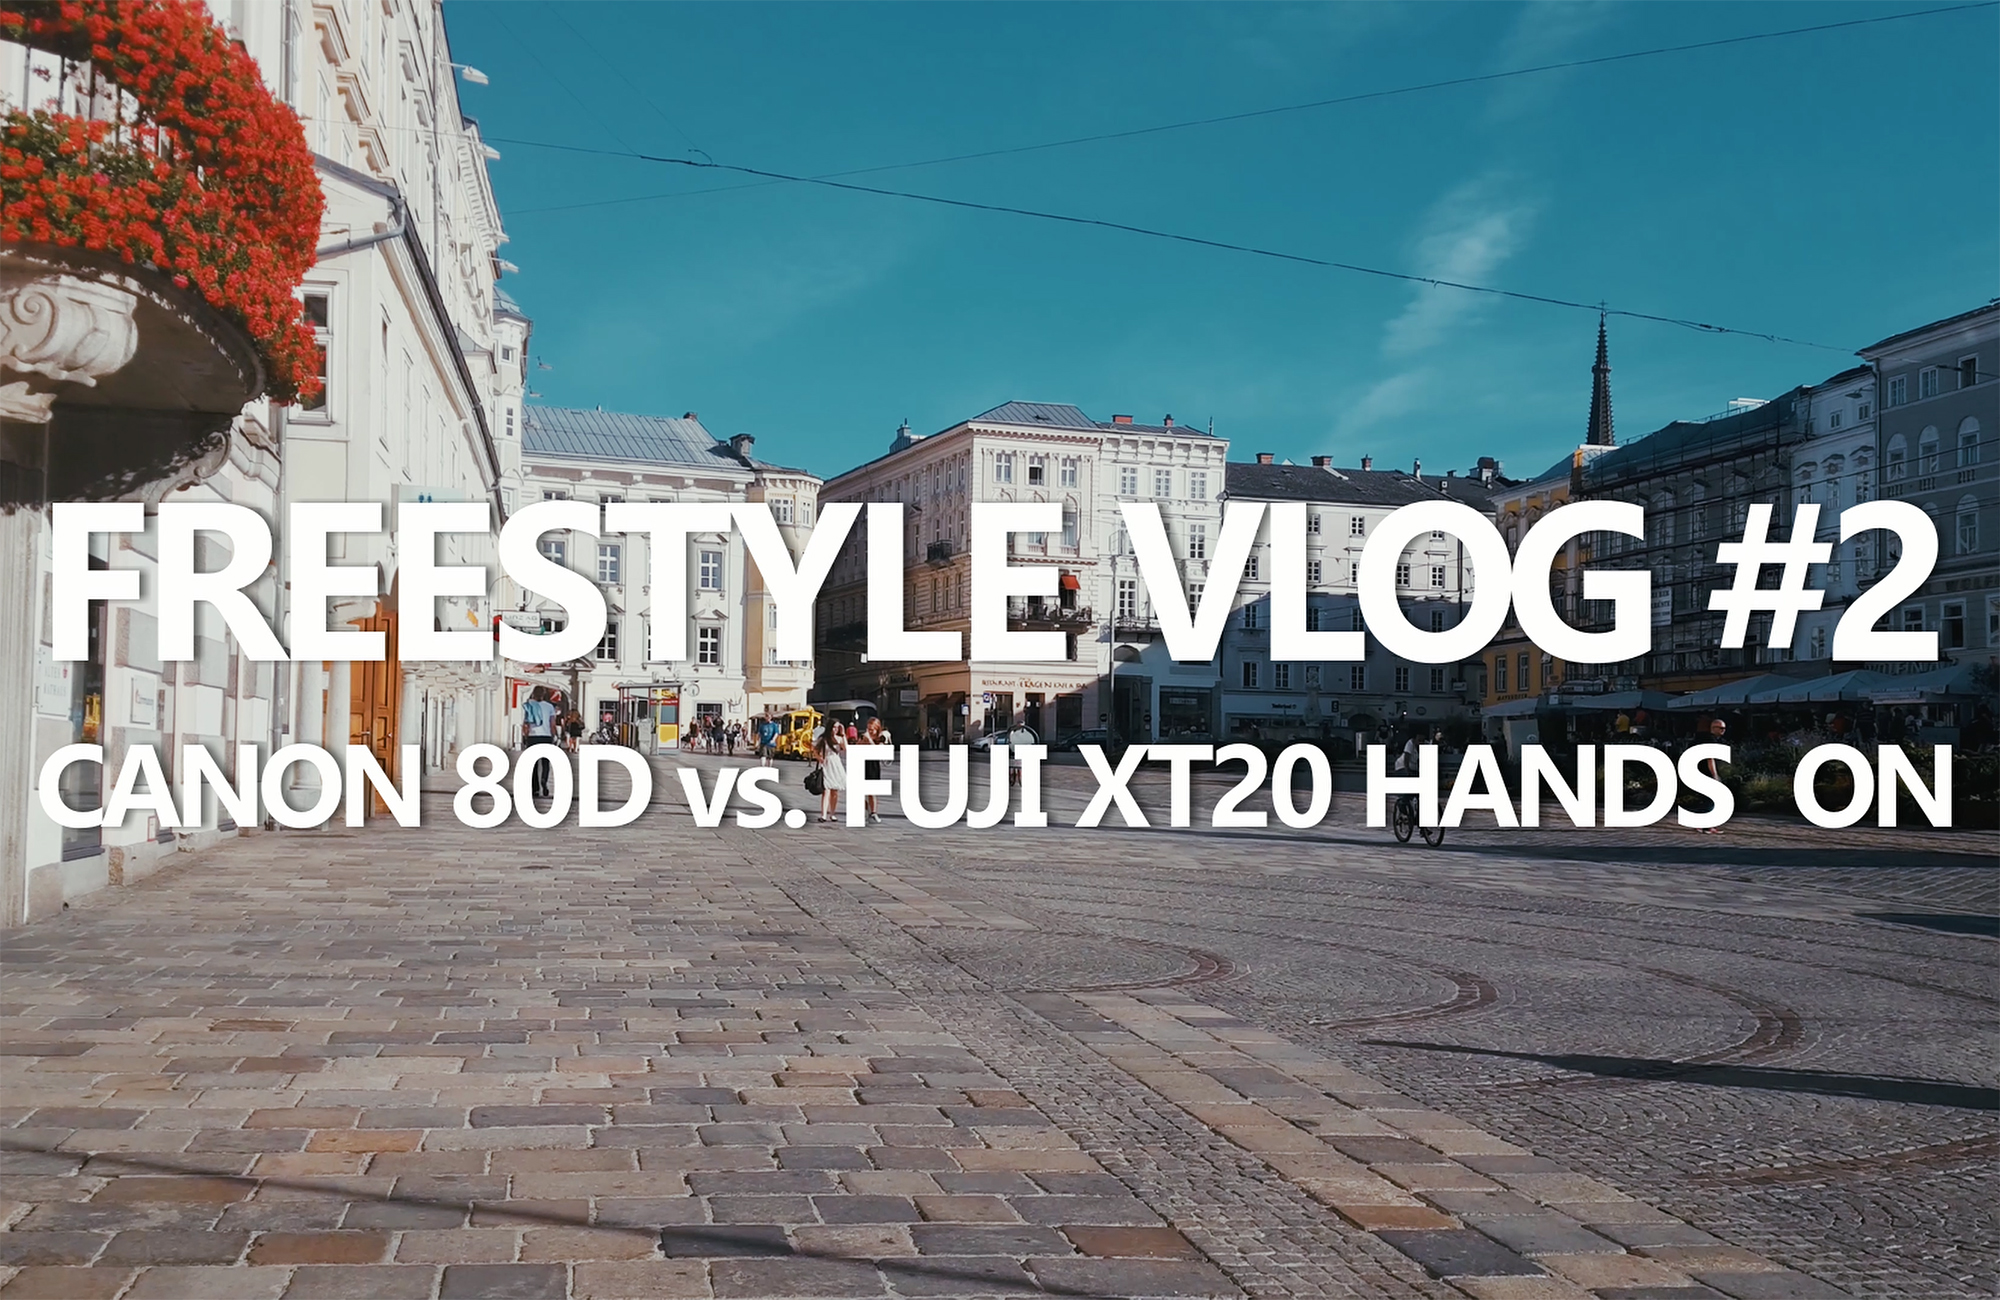 Freestyle VLOG #2 – Canon 80D vs Fuji XT20 HANDS ON